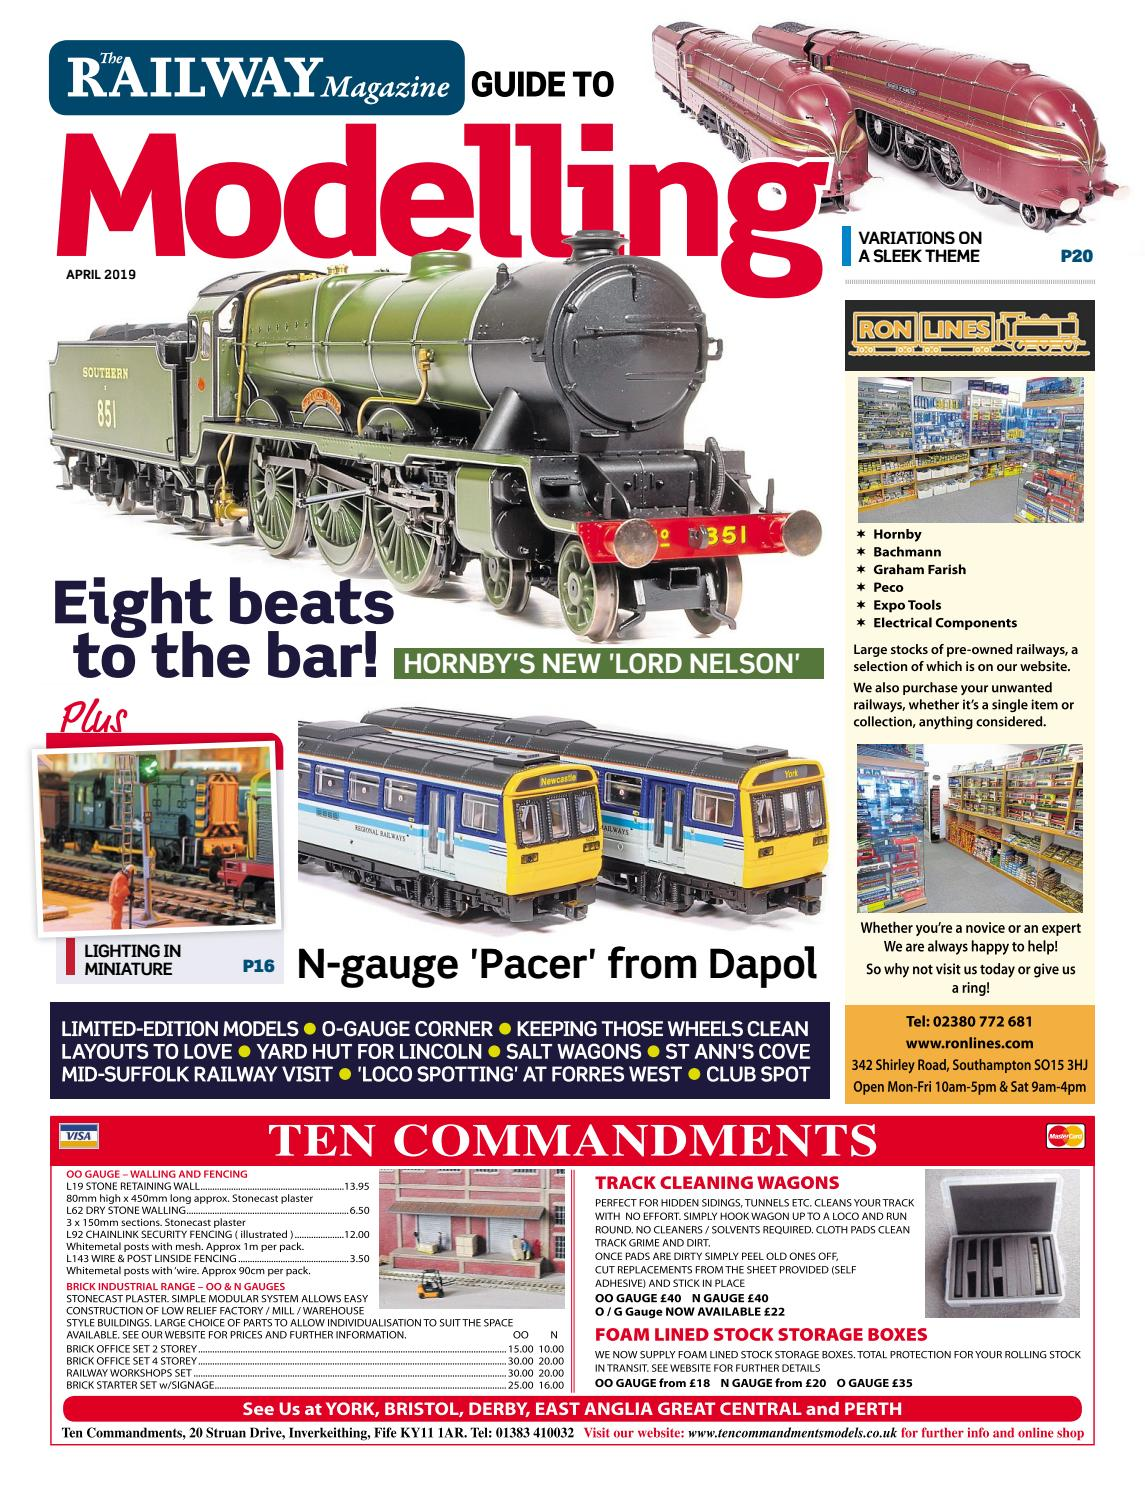 Railway Magazine Guide to Modelling - April 2019 - Preview